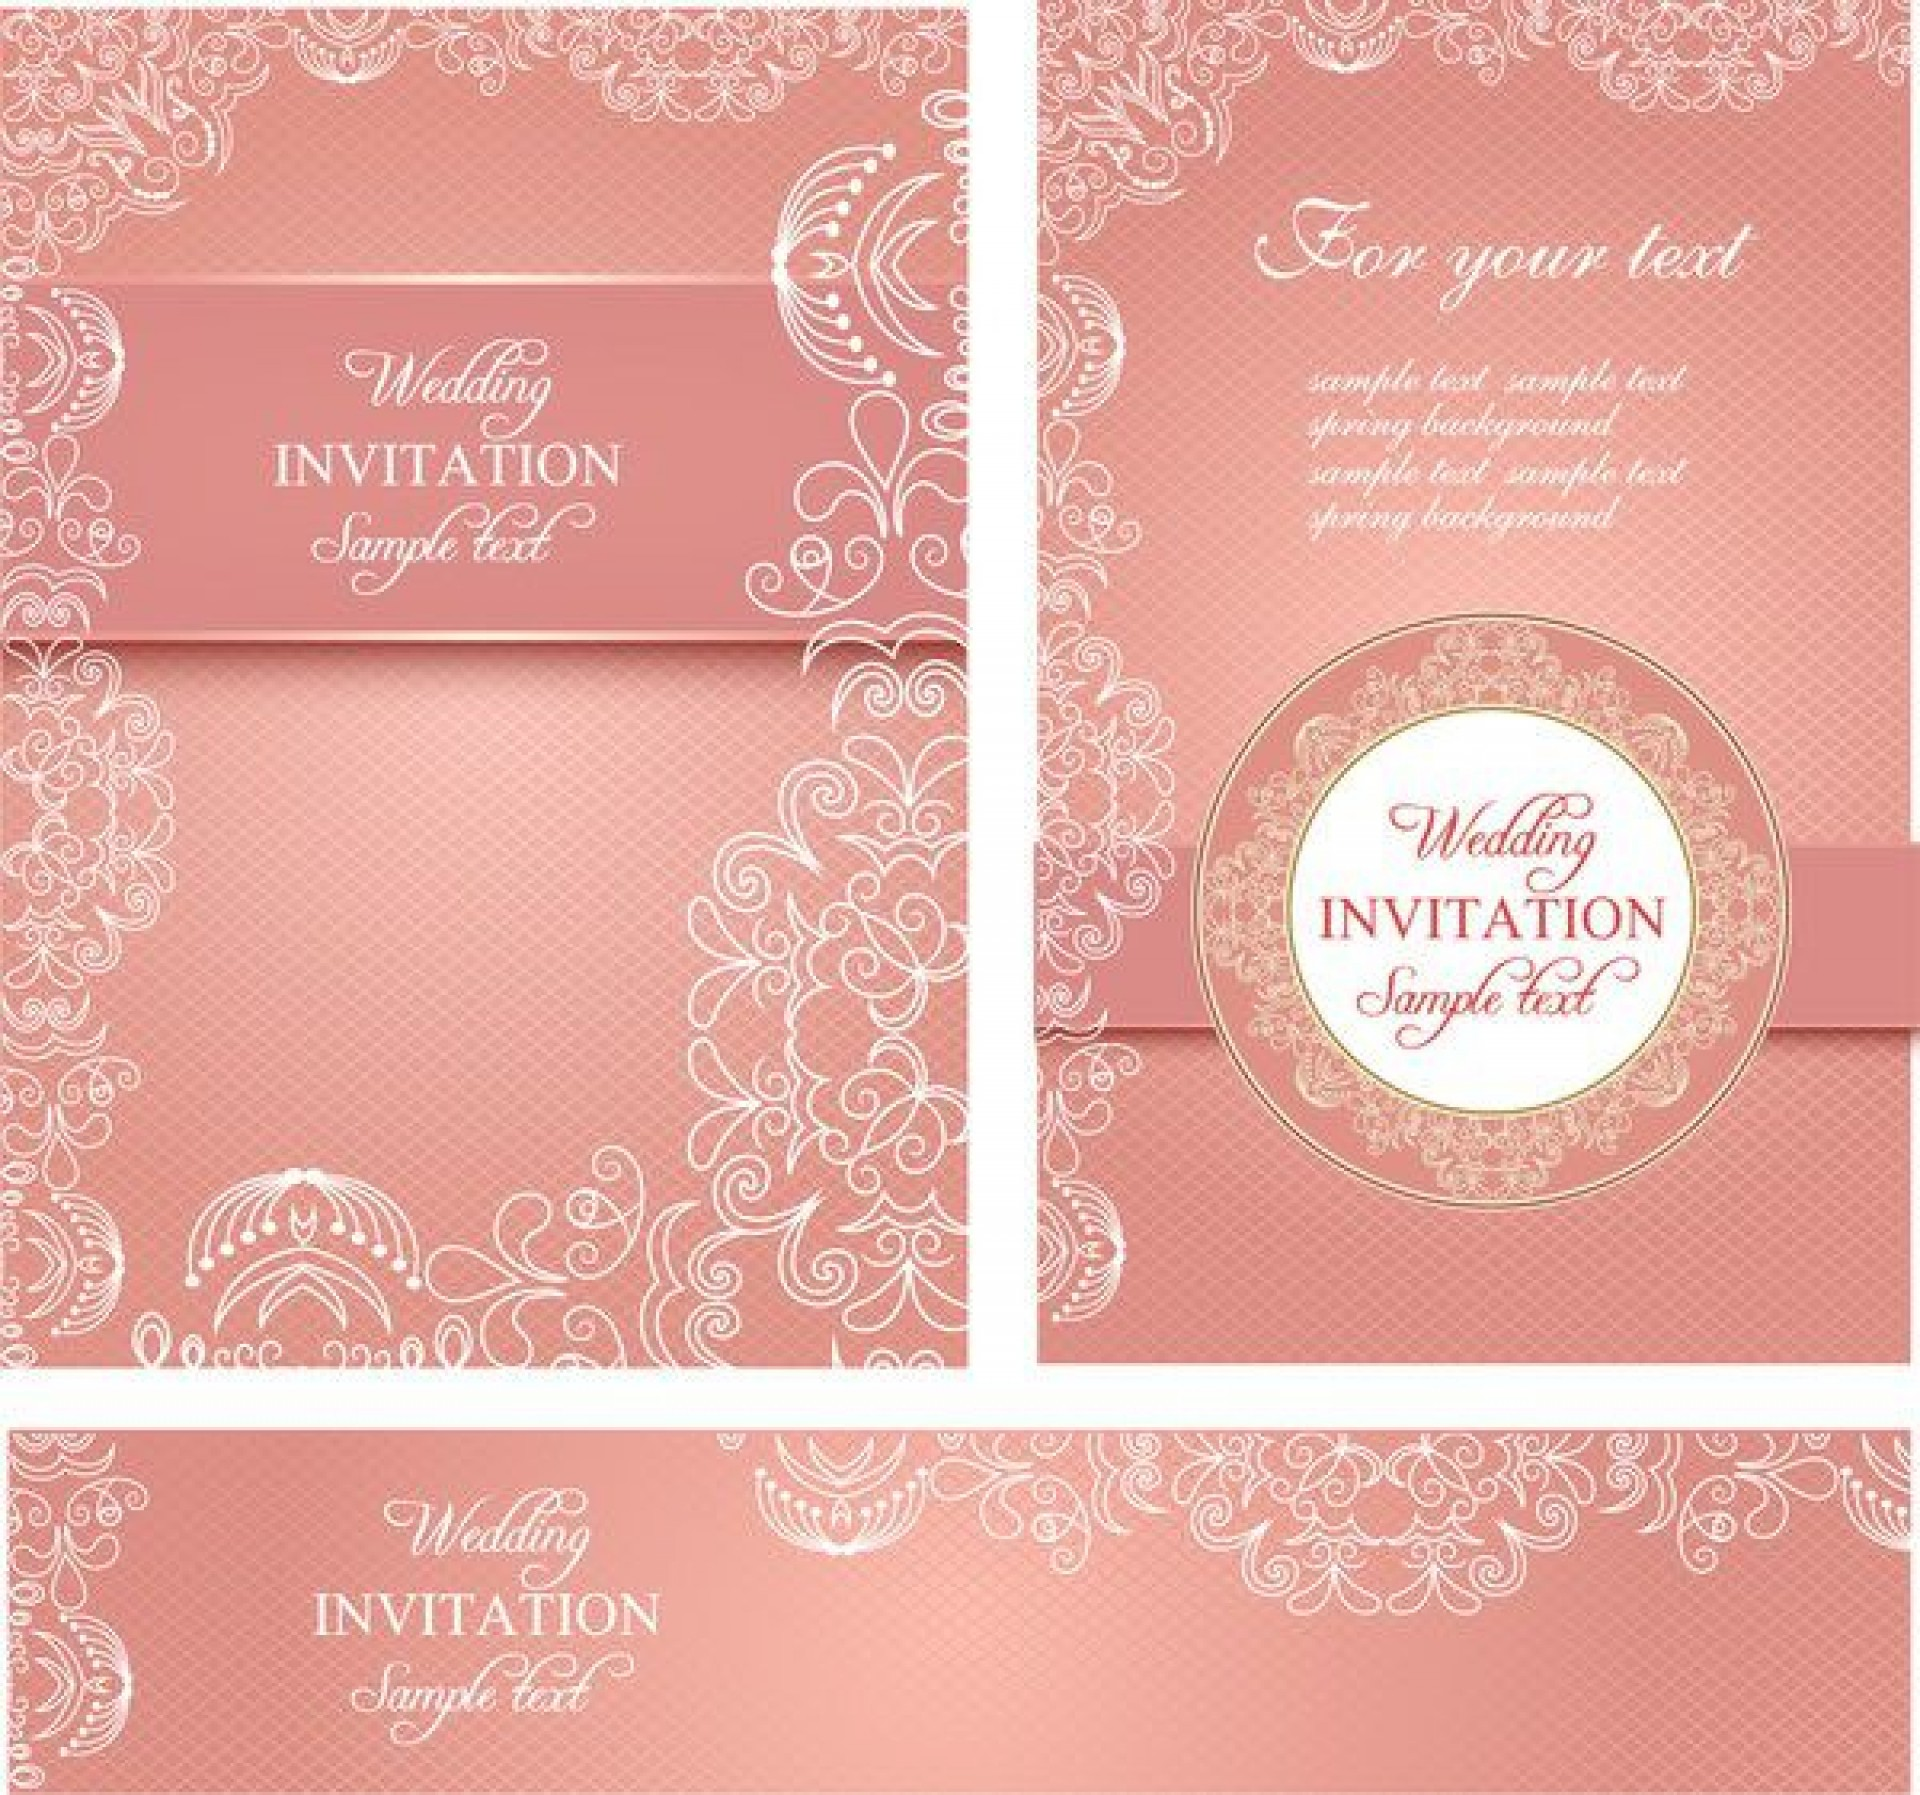 010 Fearsome Free Download Invitation Card Design Sample  Birthday Party Blank Wedding Template Software1920